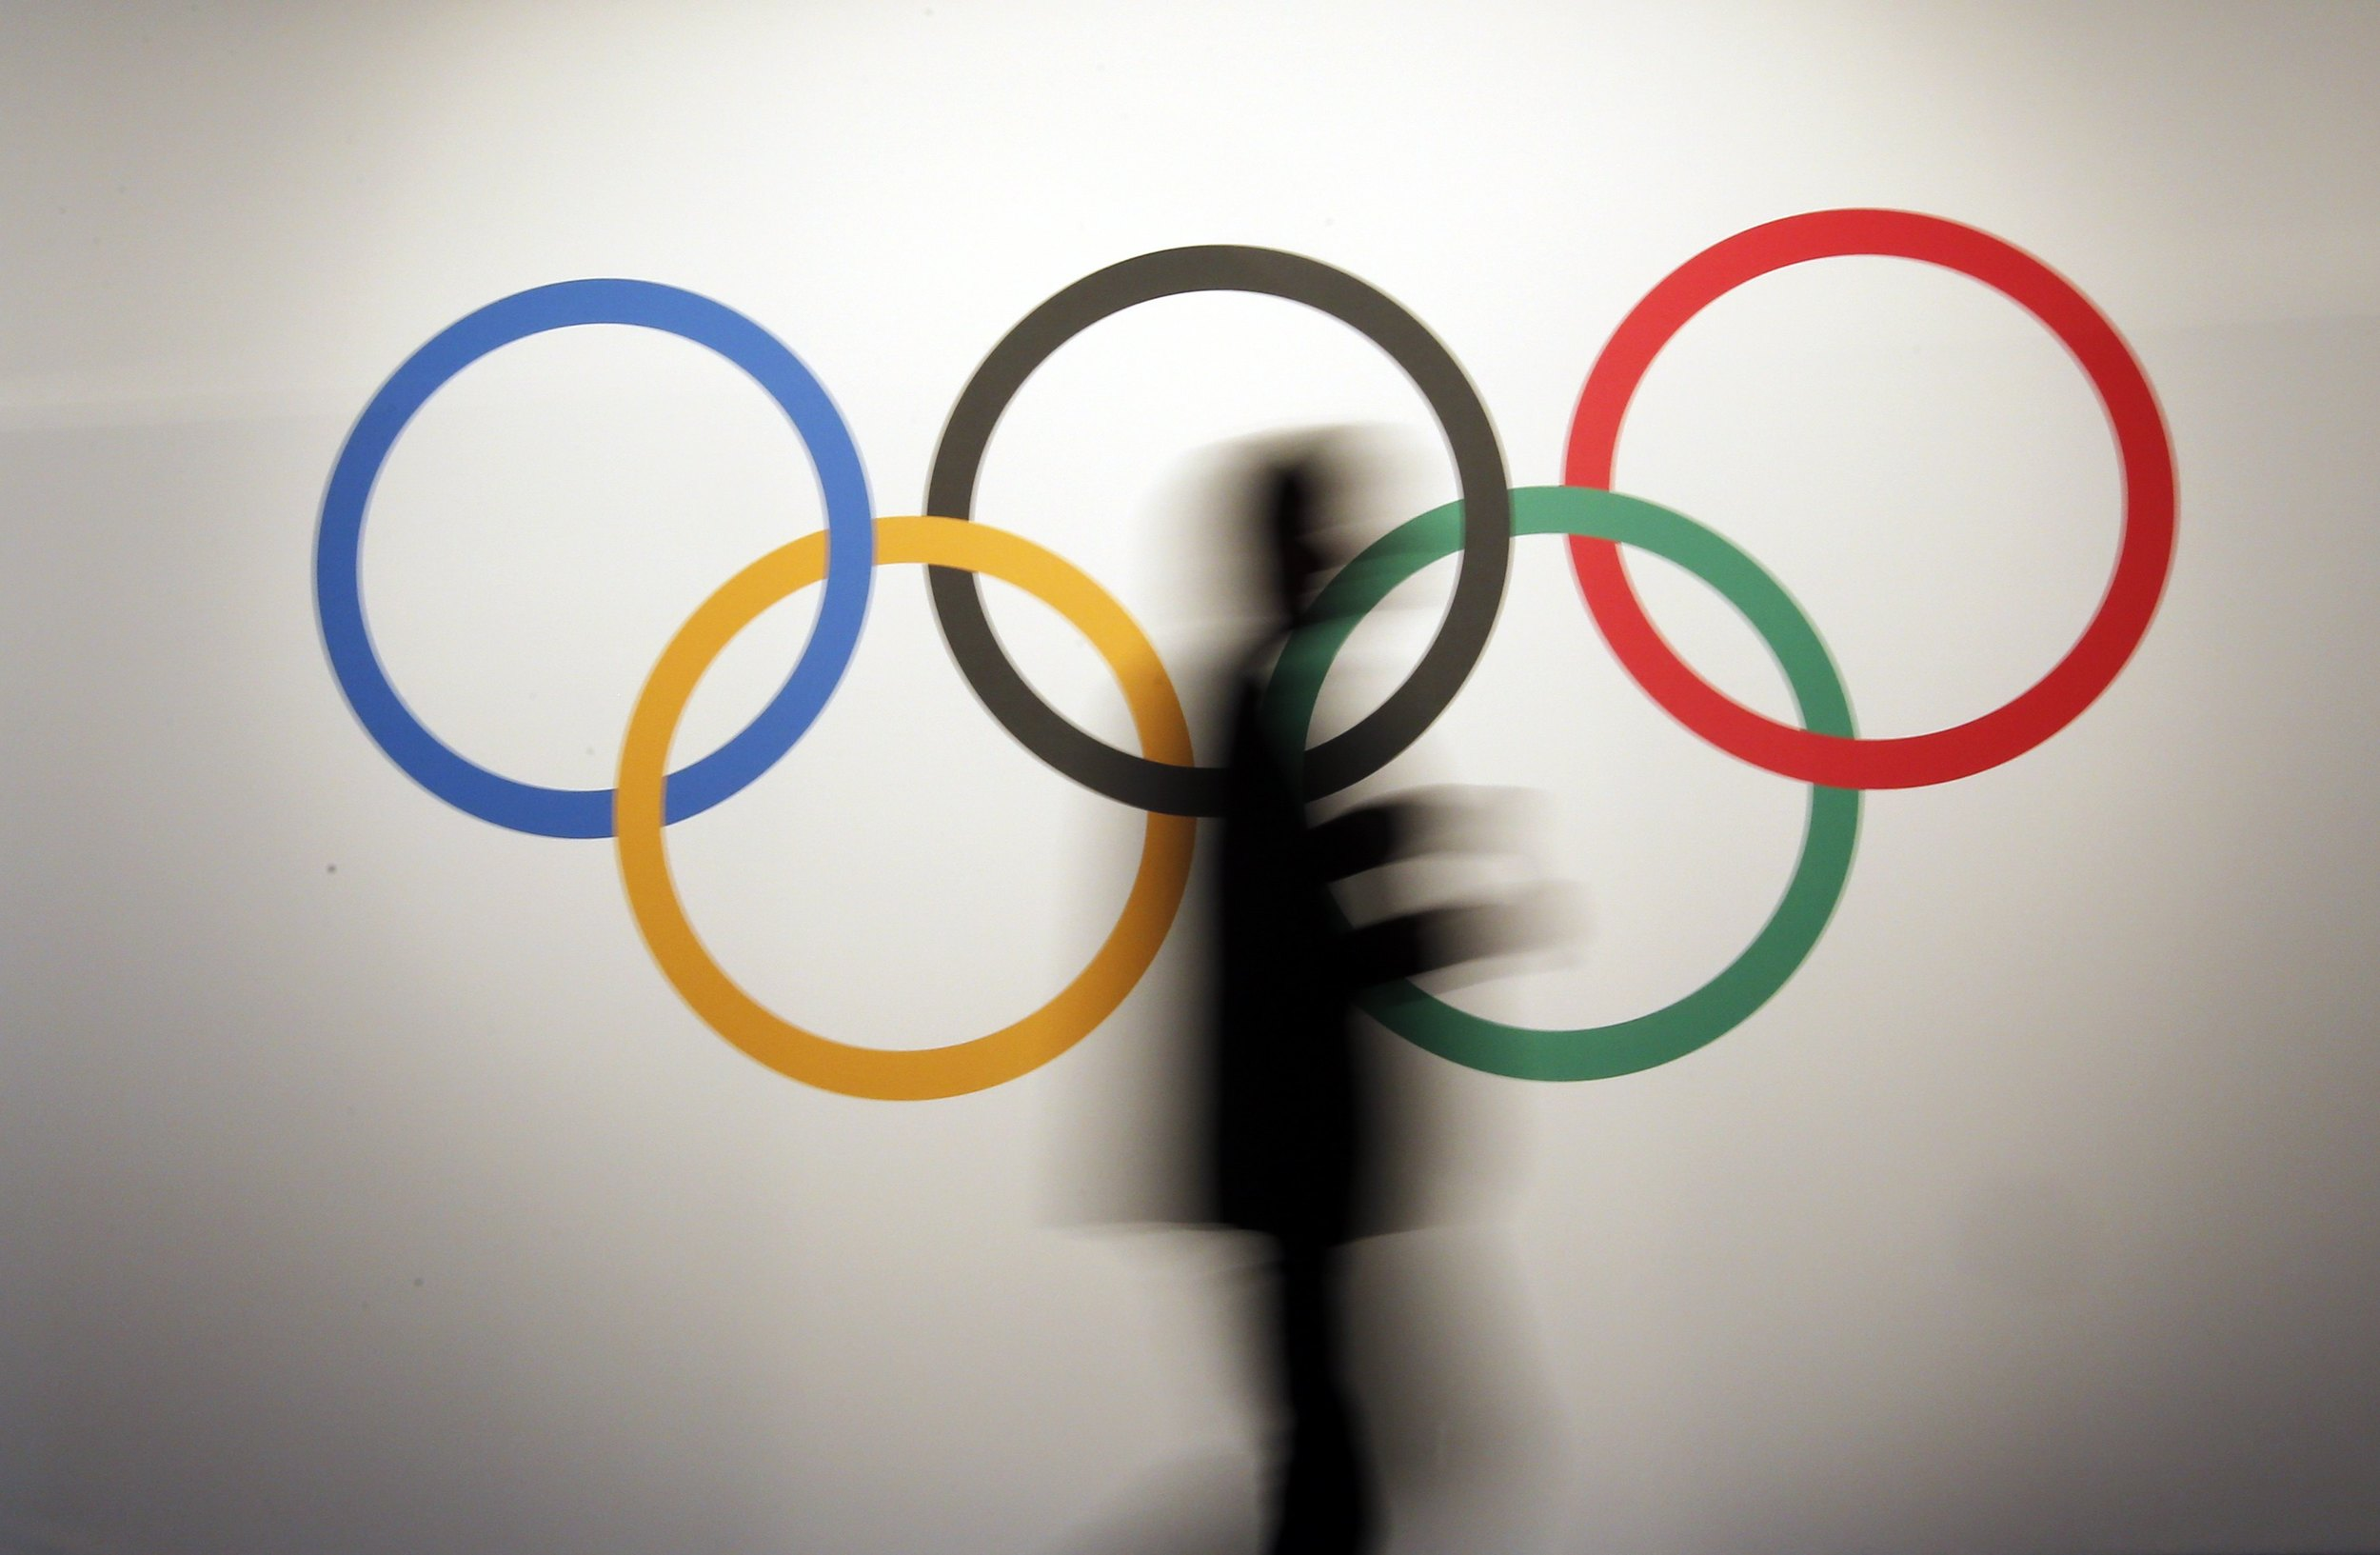 A man walks past the 5 Olympic Rings. These rings, representing the 5 continents of the world, will be the symbol that Team Refugee Olympic Athletes will walk behind during the Games in Rio later this year. Image supplied by Action Images